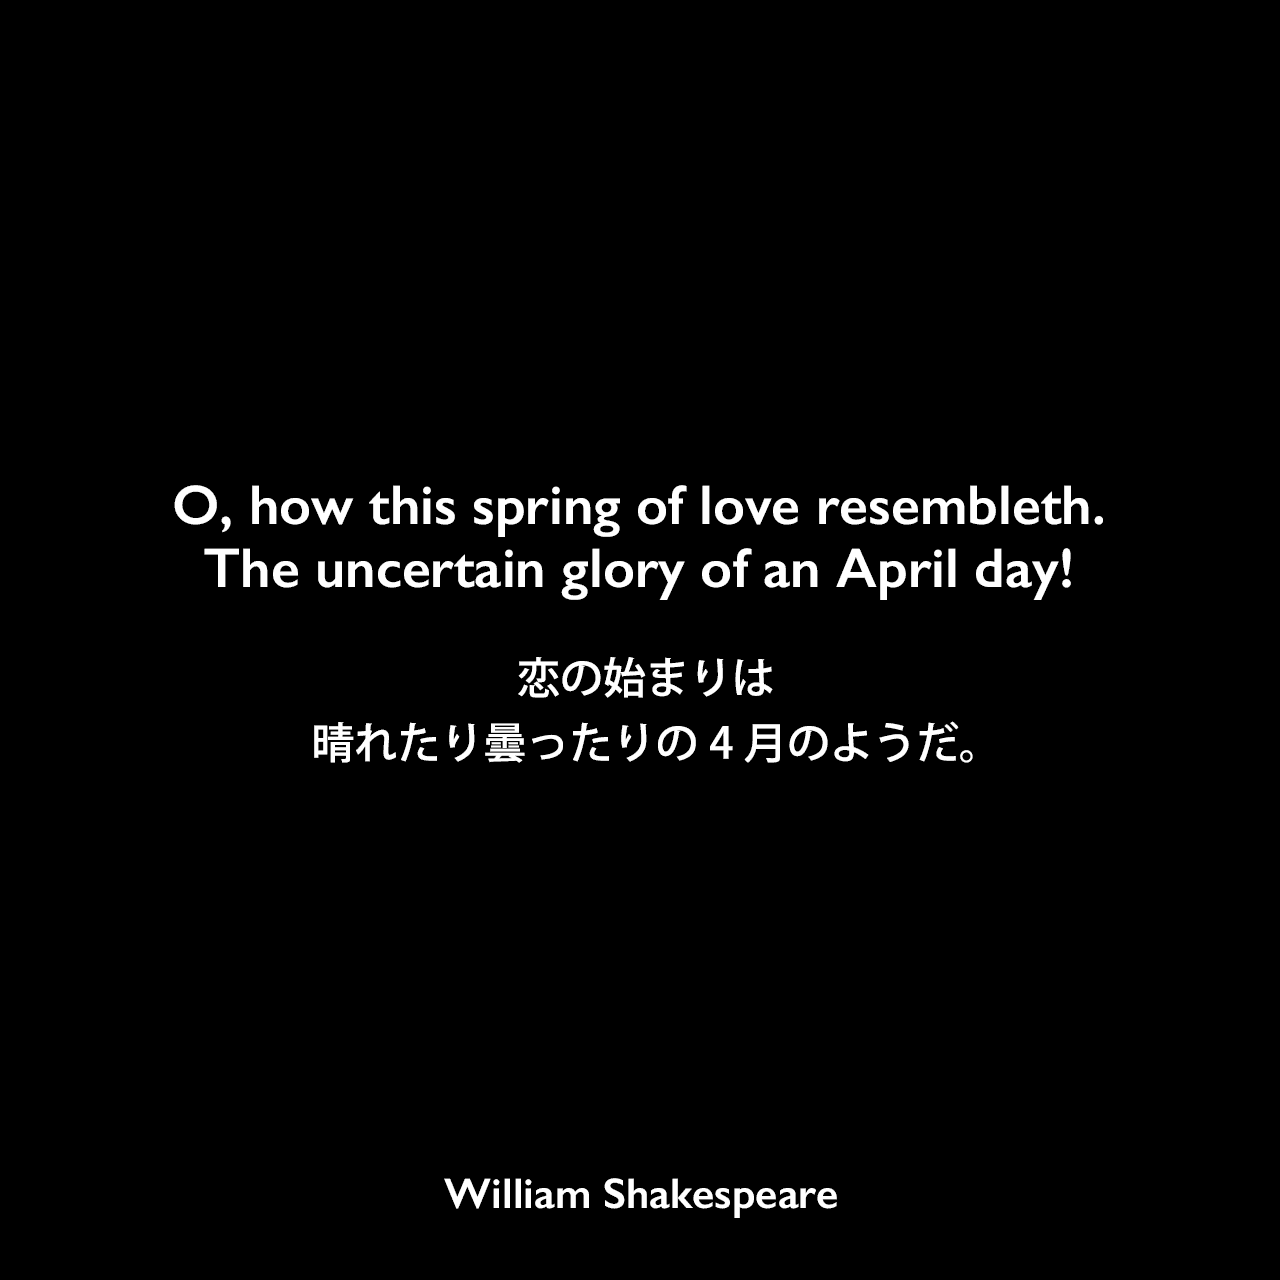 O, how this spring of love resembleth. The uncertain glory of an April day! 恋の始まりは晴れたり曇ったりの4月のようだ。William Shakespeare